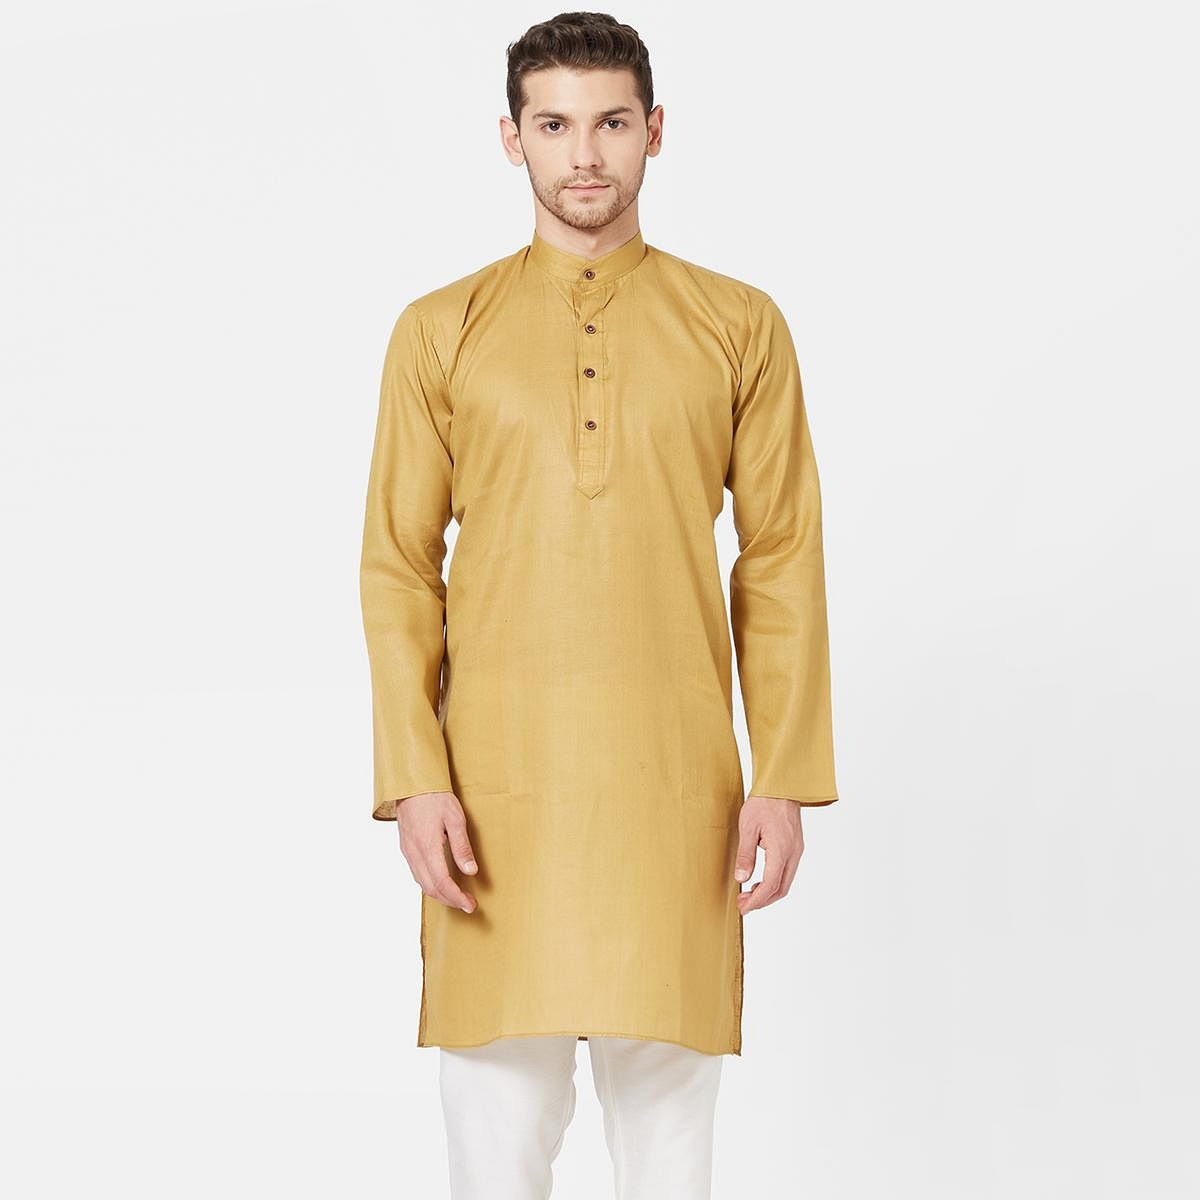 Mesmeric Mustard Yellow Colored Festive Wear Cotton Kurta